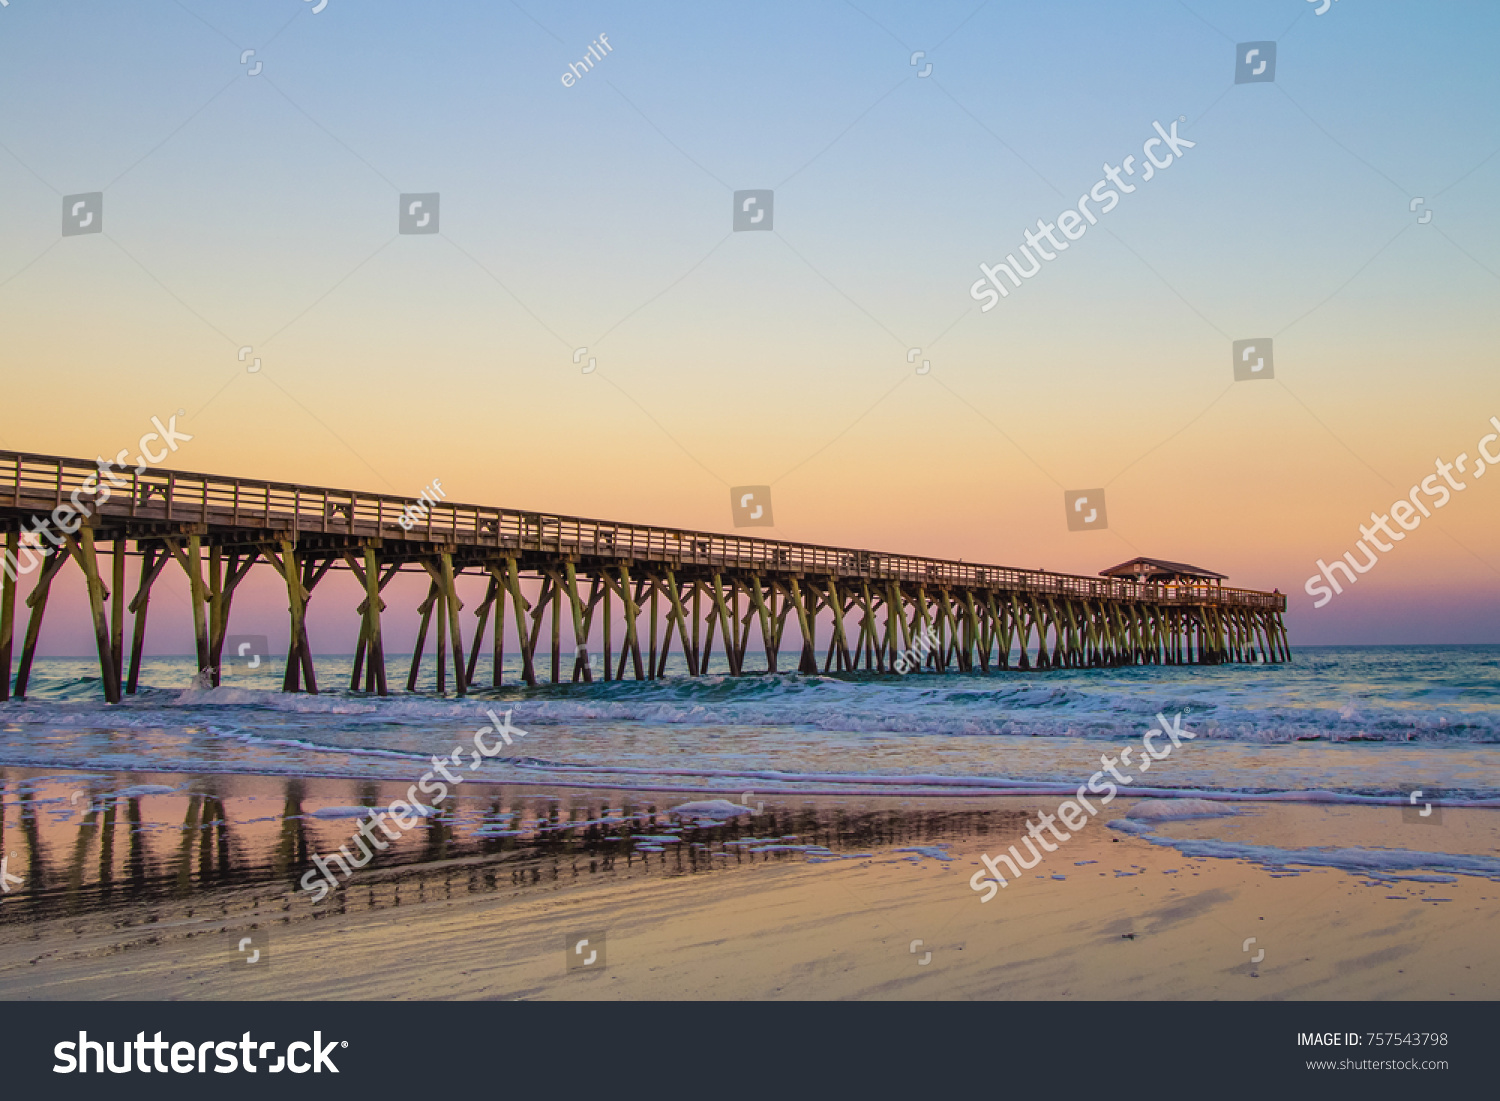 Myrtle Beach Ocean Pier Background Sunset Colors On The Coast Of South